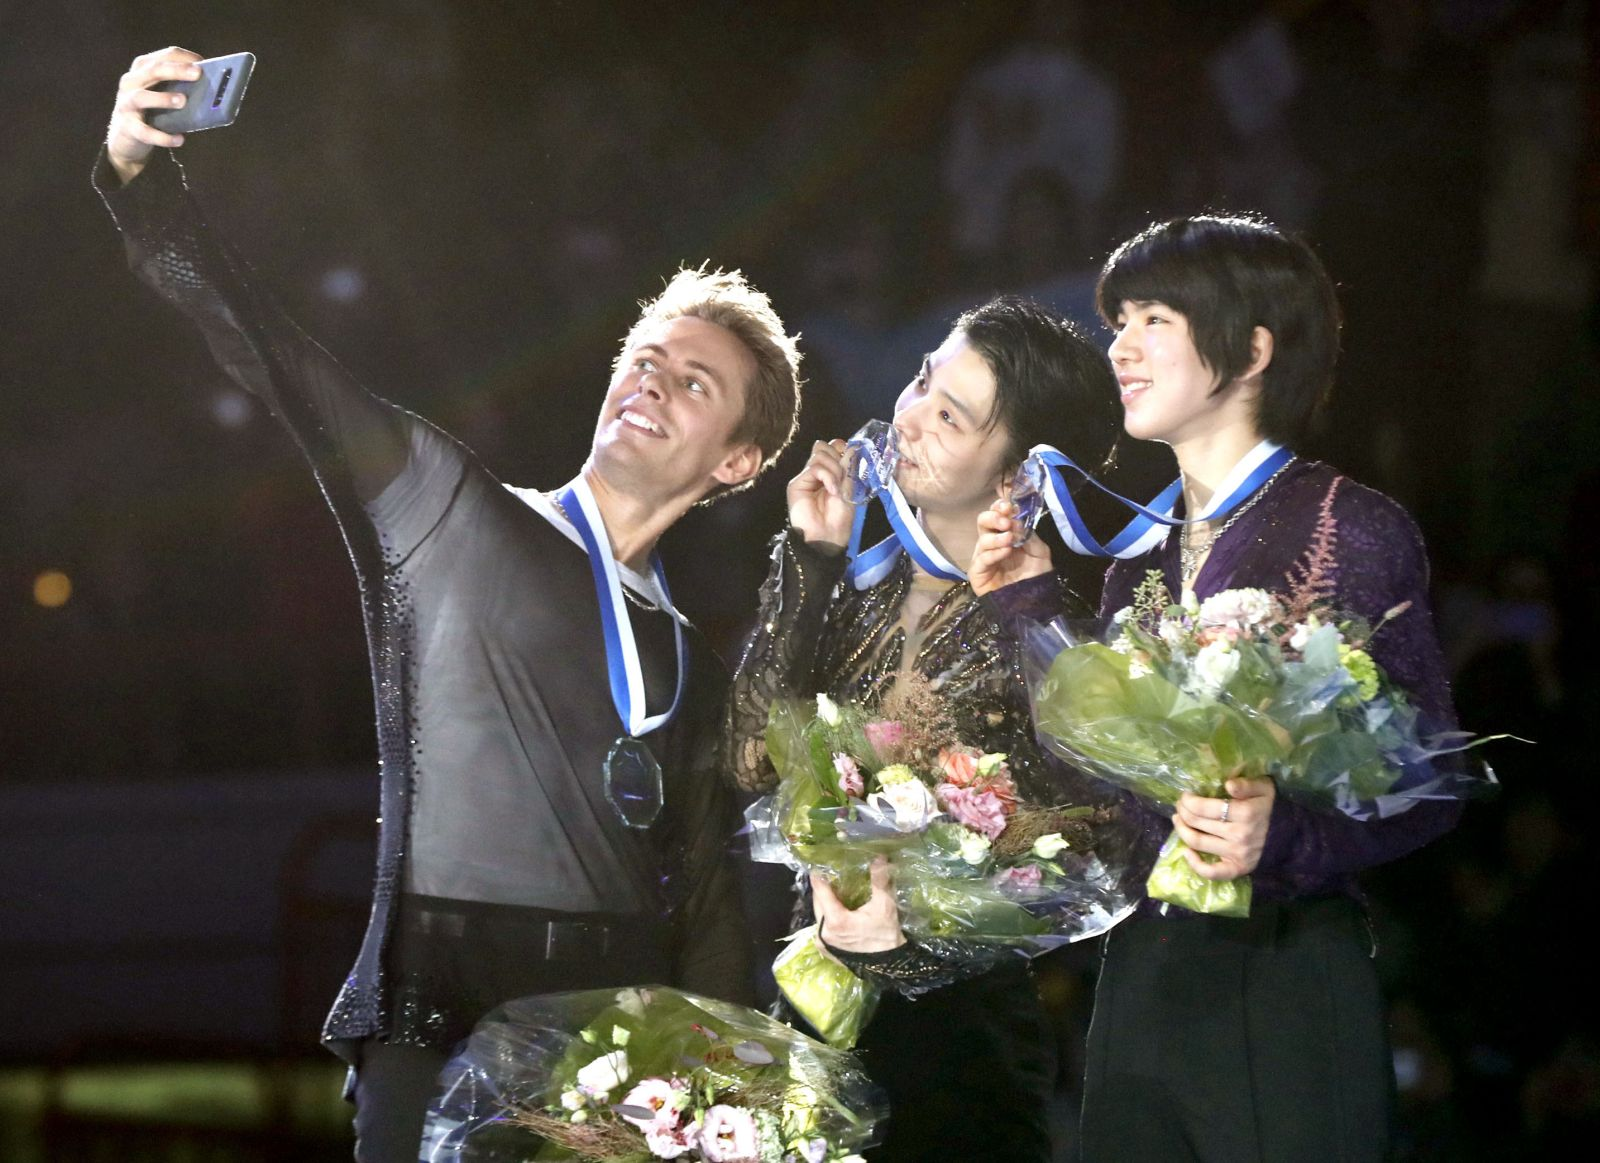 Olympic Medalist Yuzuru Hanyu Strikes Gold at Helsinki Grand Prix